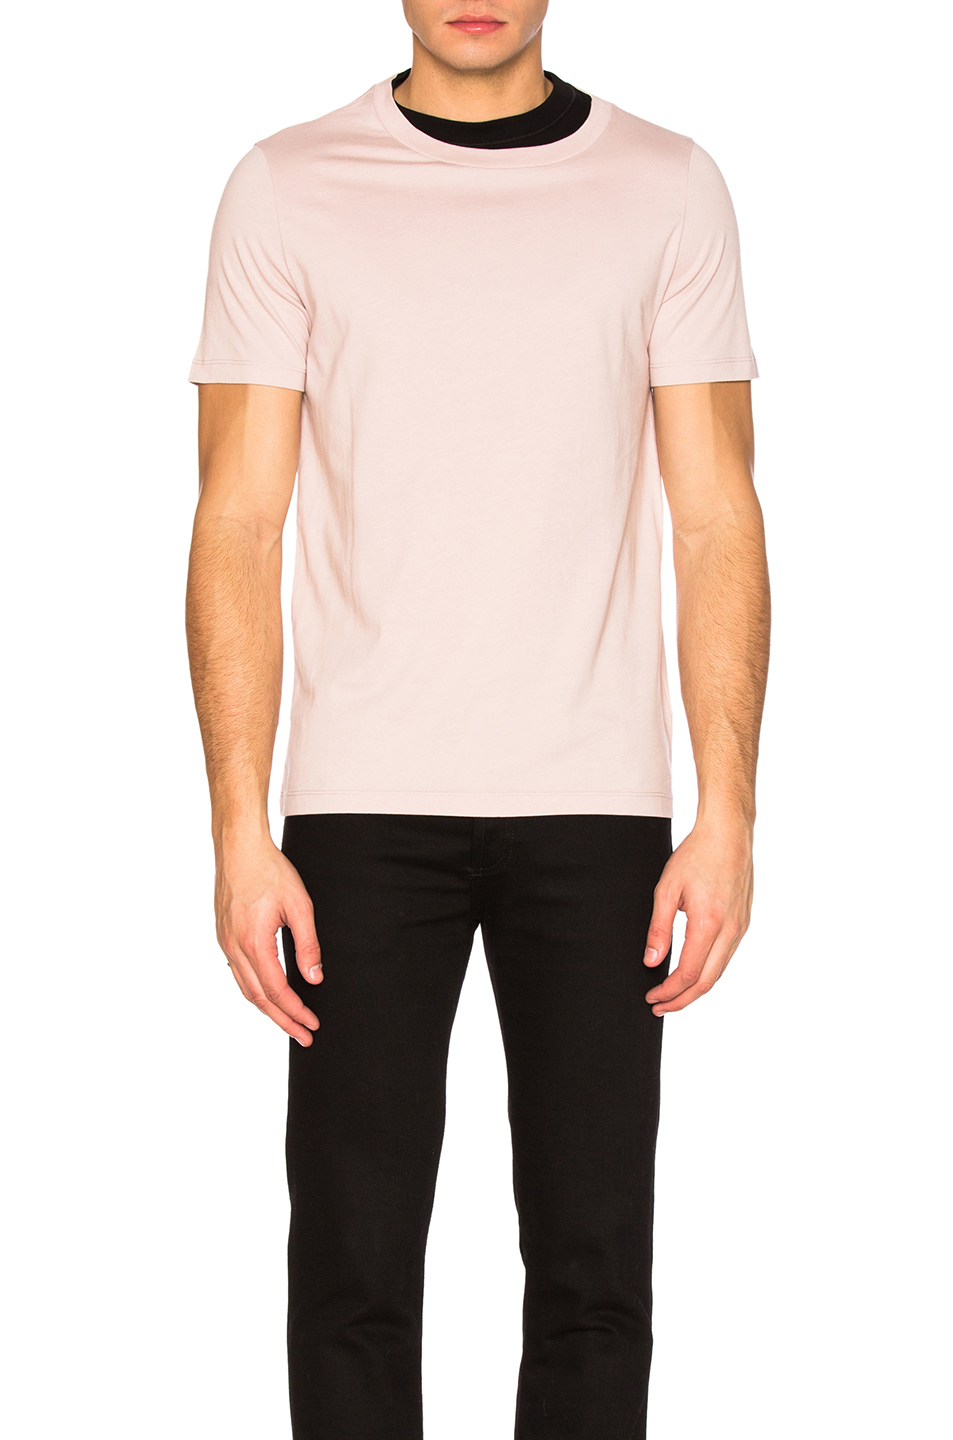 Maison Margiela Cotton Jersey Contrast Tee in Pink